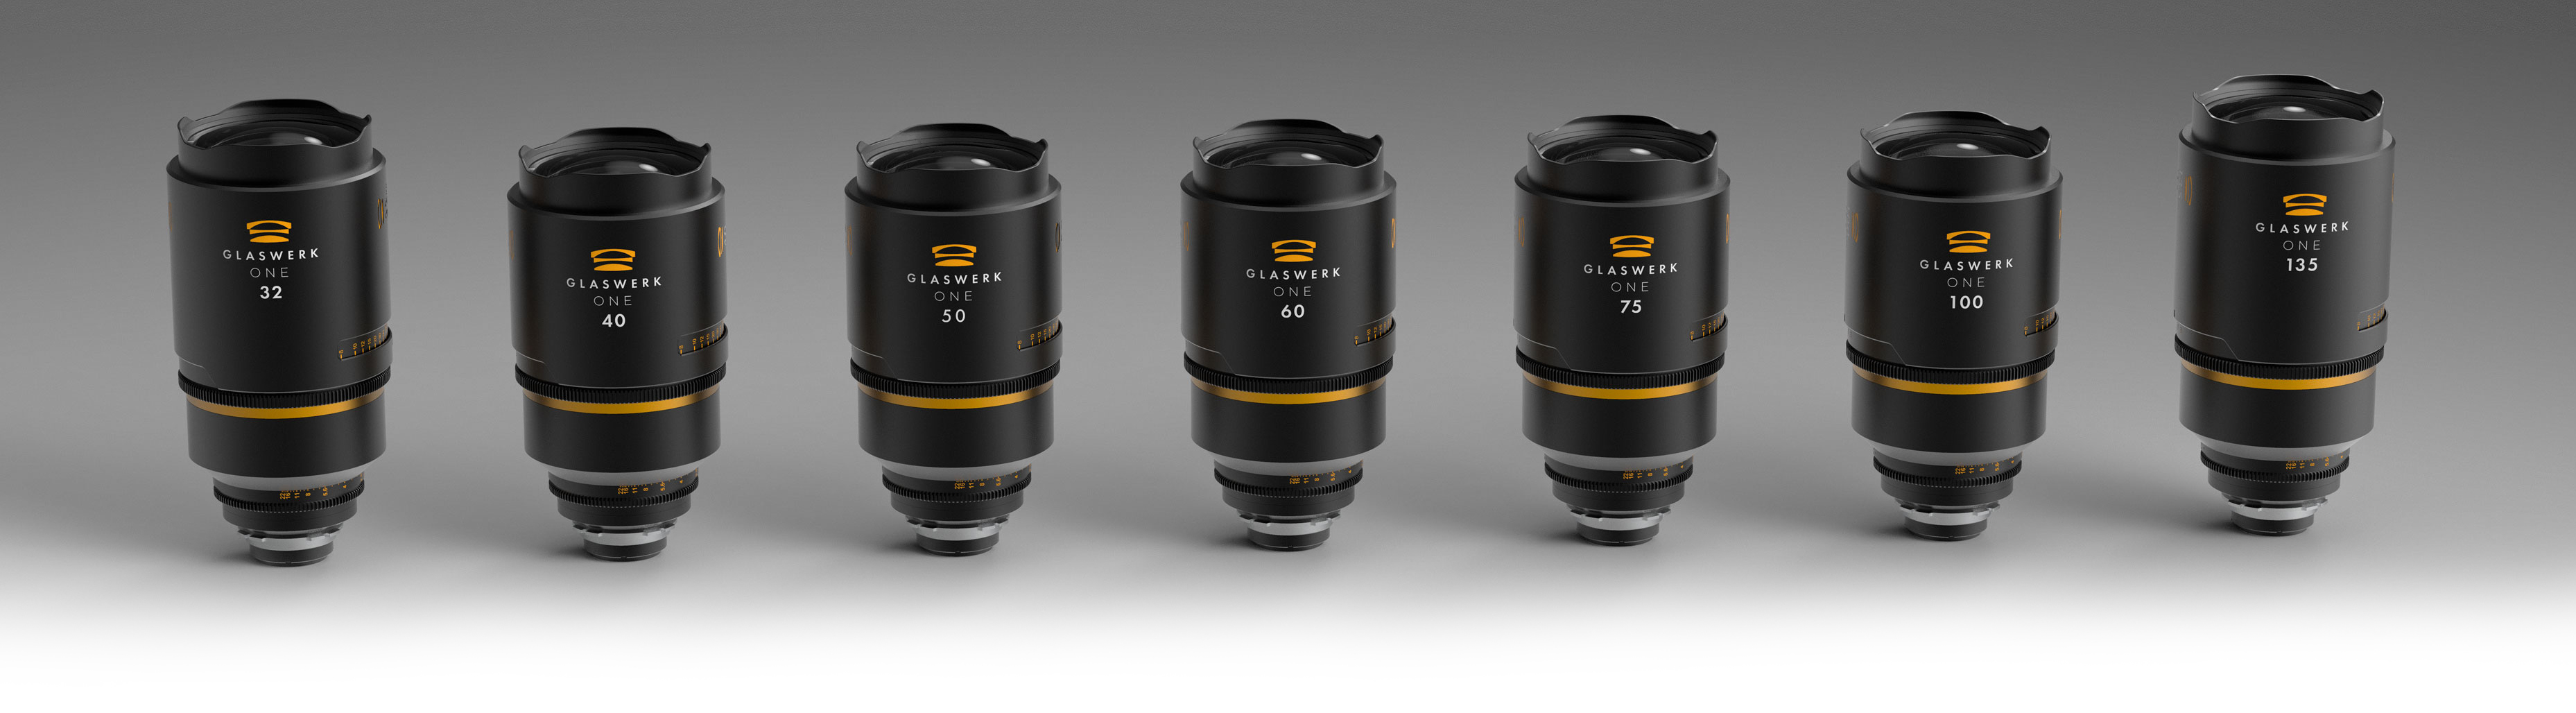 Glaswerk One anamorphic lenses